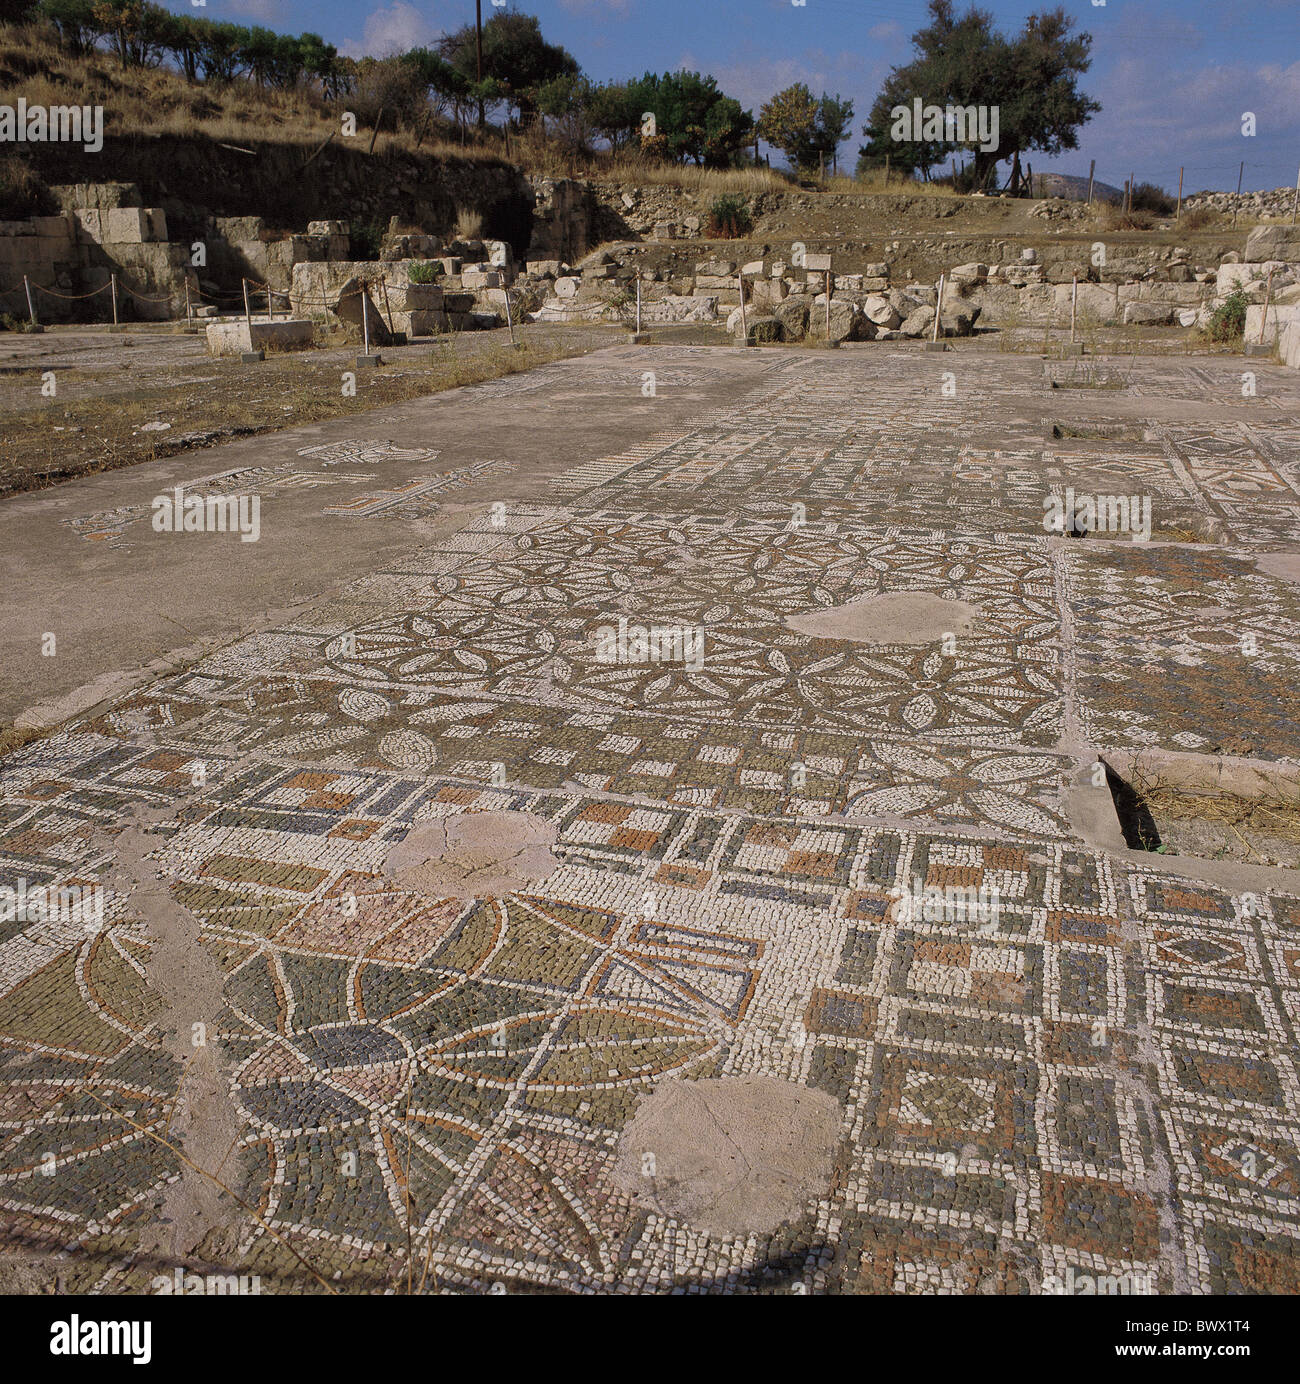 Cyprus west Soli archeology mosaic floor antique Ancient world antiquity - Stock Image